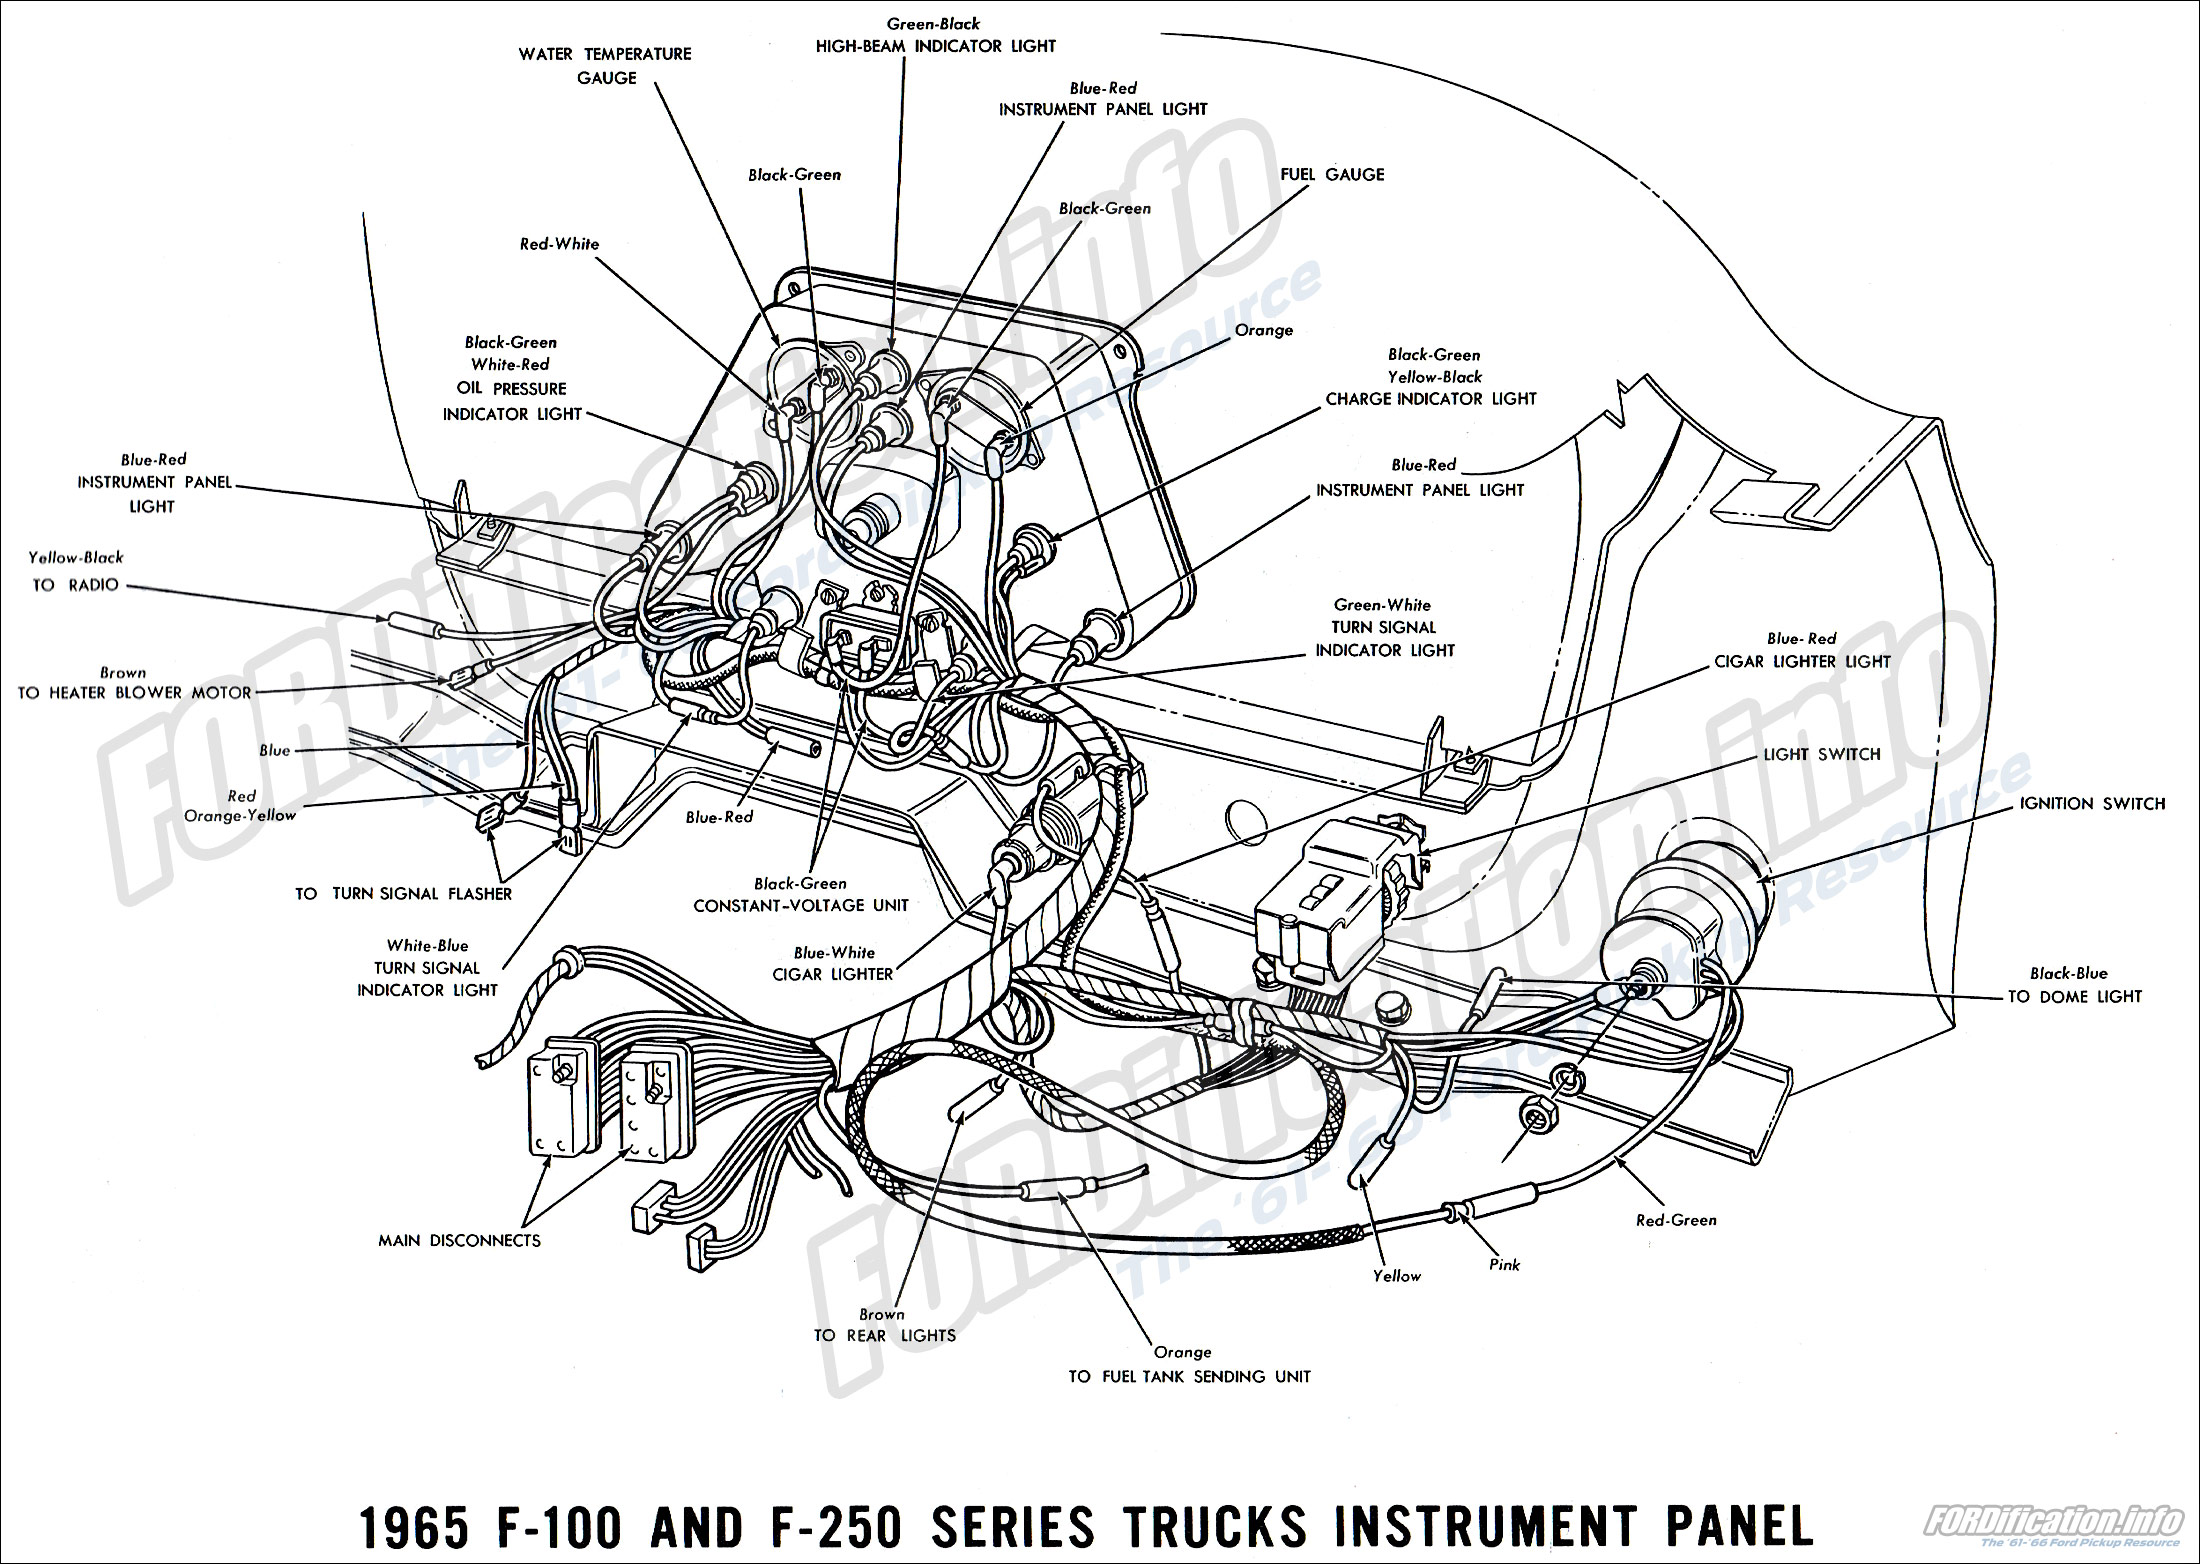 1965 Ford Starter Wiring - 1994 Honda Accord Wiring Harness for Wiring  Diagram Schematics